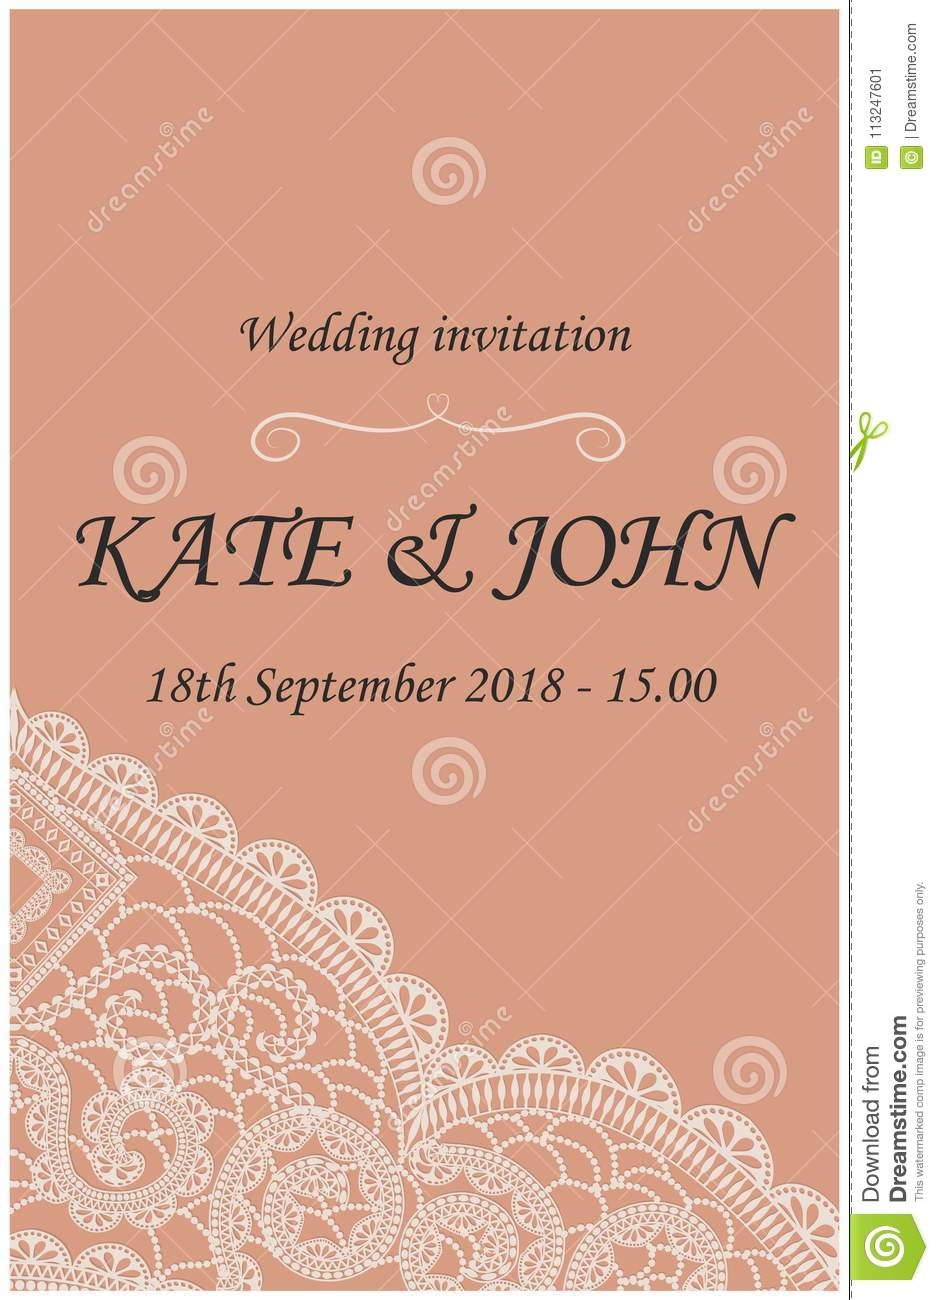 Wedding invitation with lace stock illustration illustration of download wedding invitation with lace stock illustration illustration of decorative vector 113247601 stopboris Images